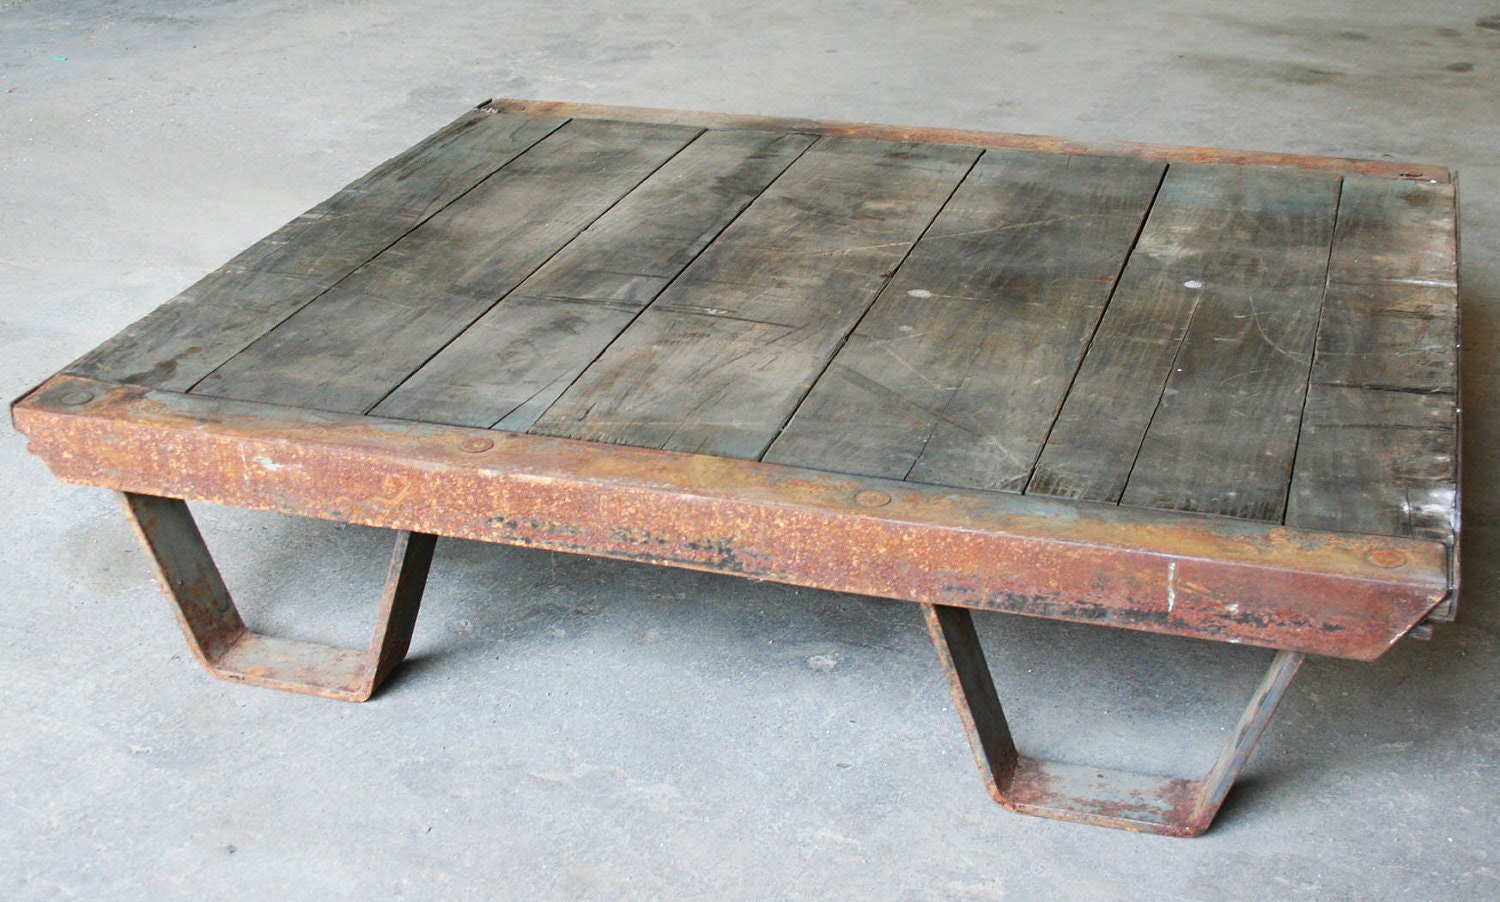 Vintage industrial coffee table pallet industrial furniture Industrial metal coffee table